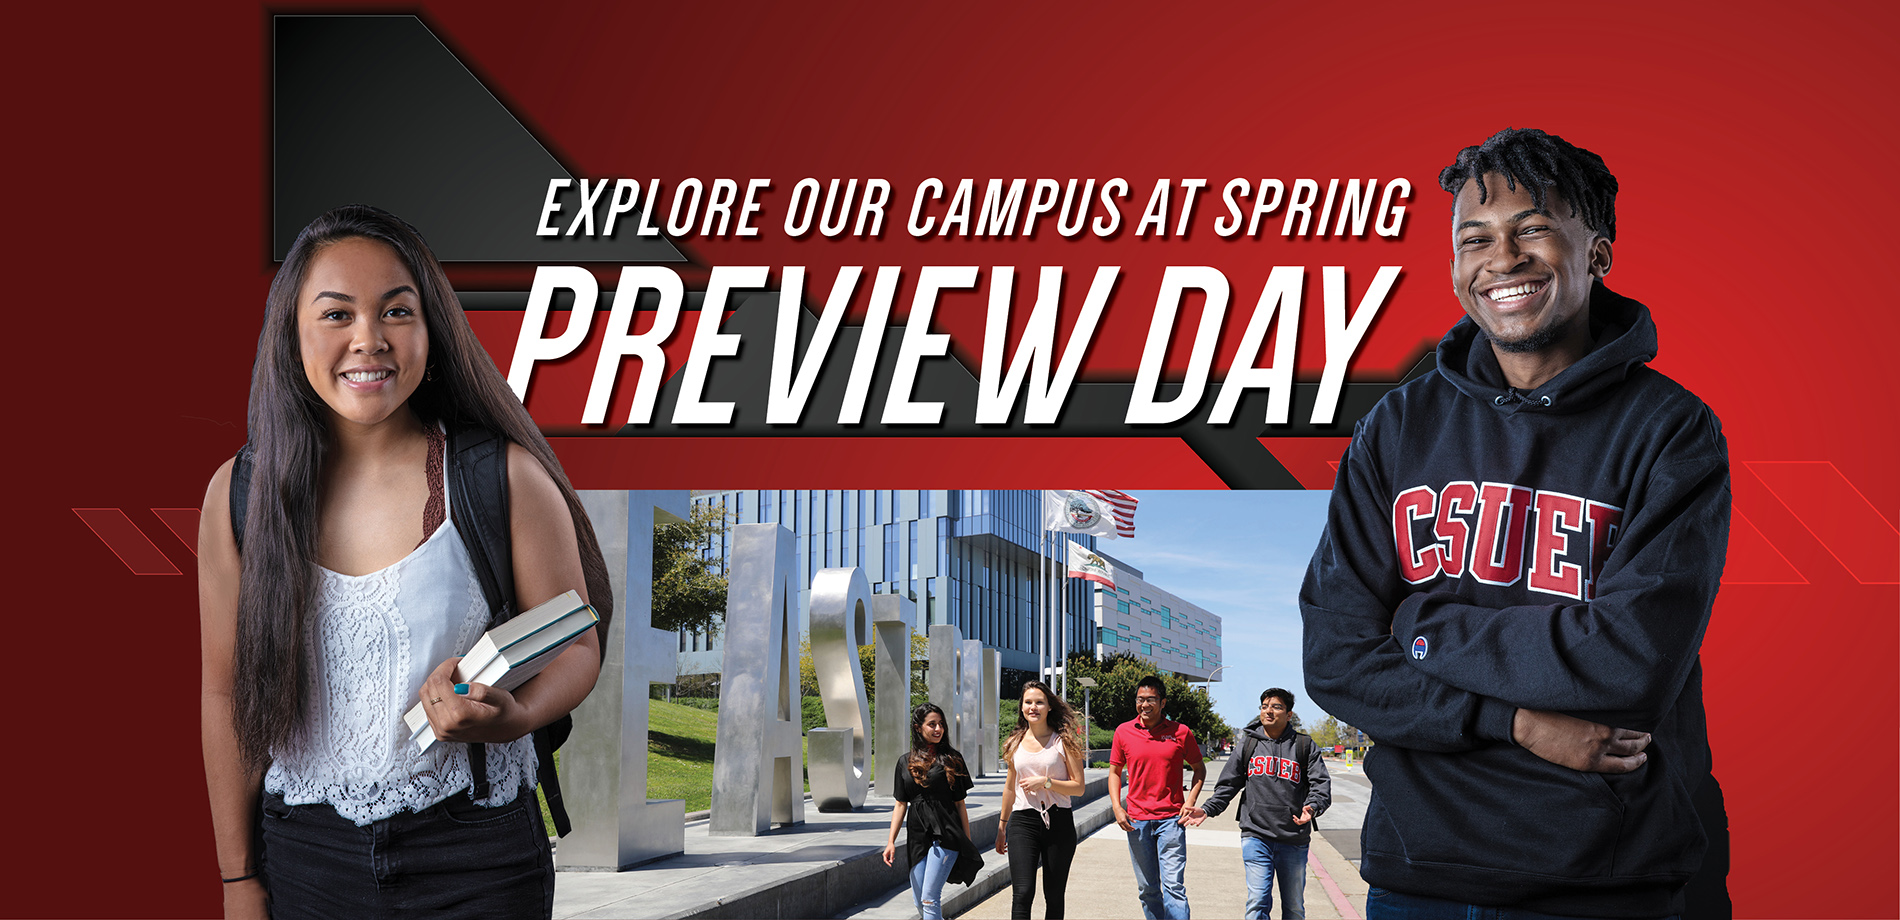 Spring preview day banner showing students on campus